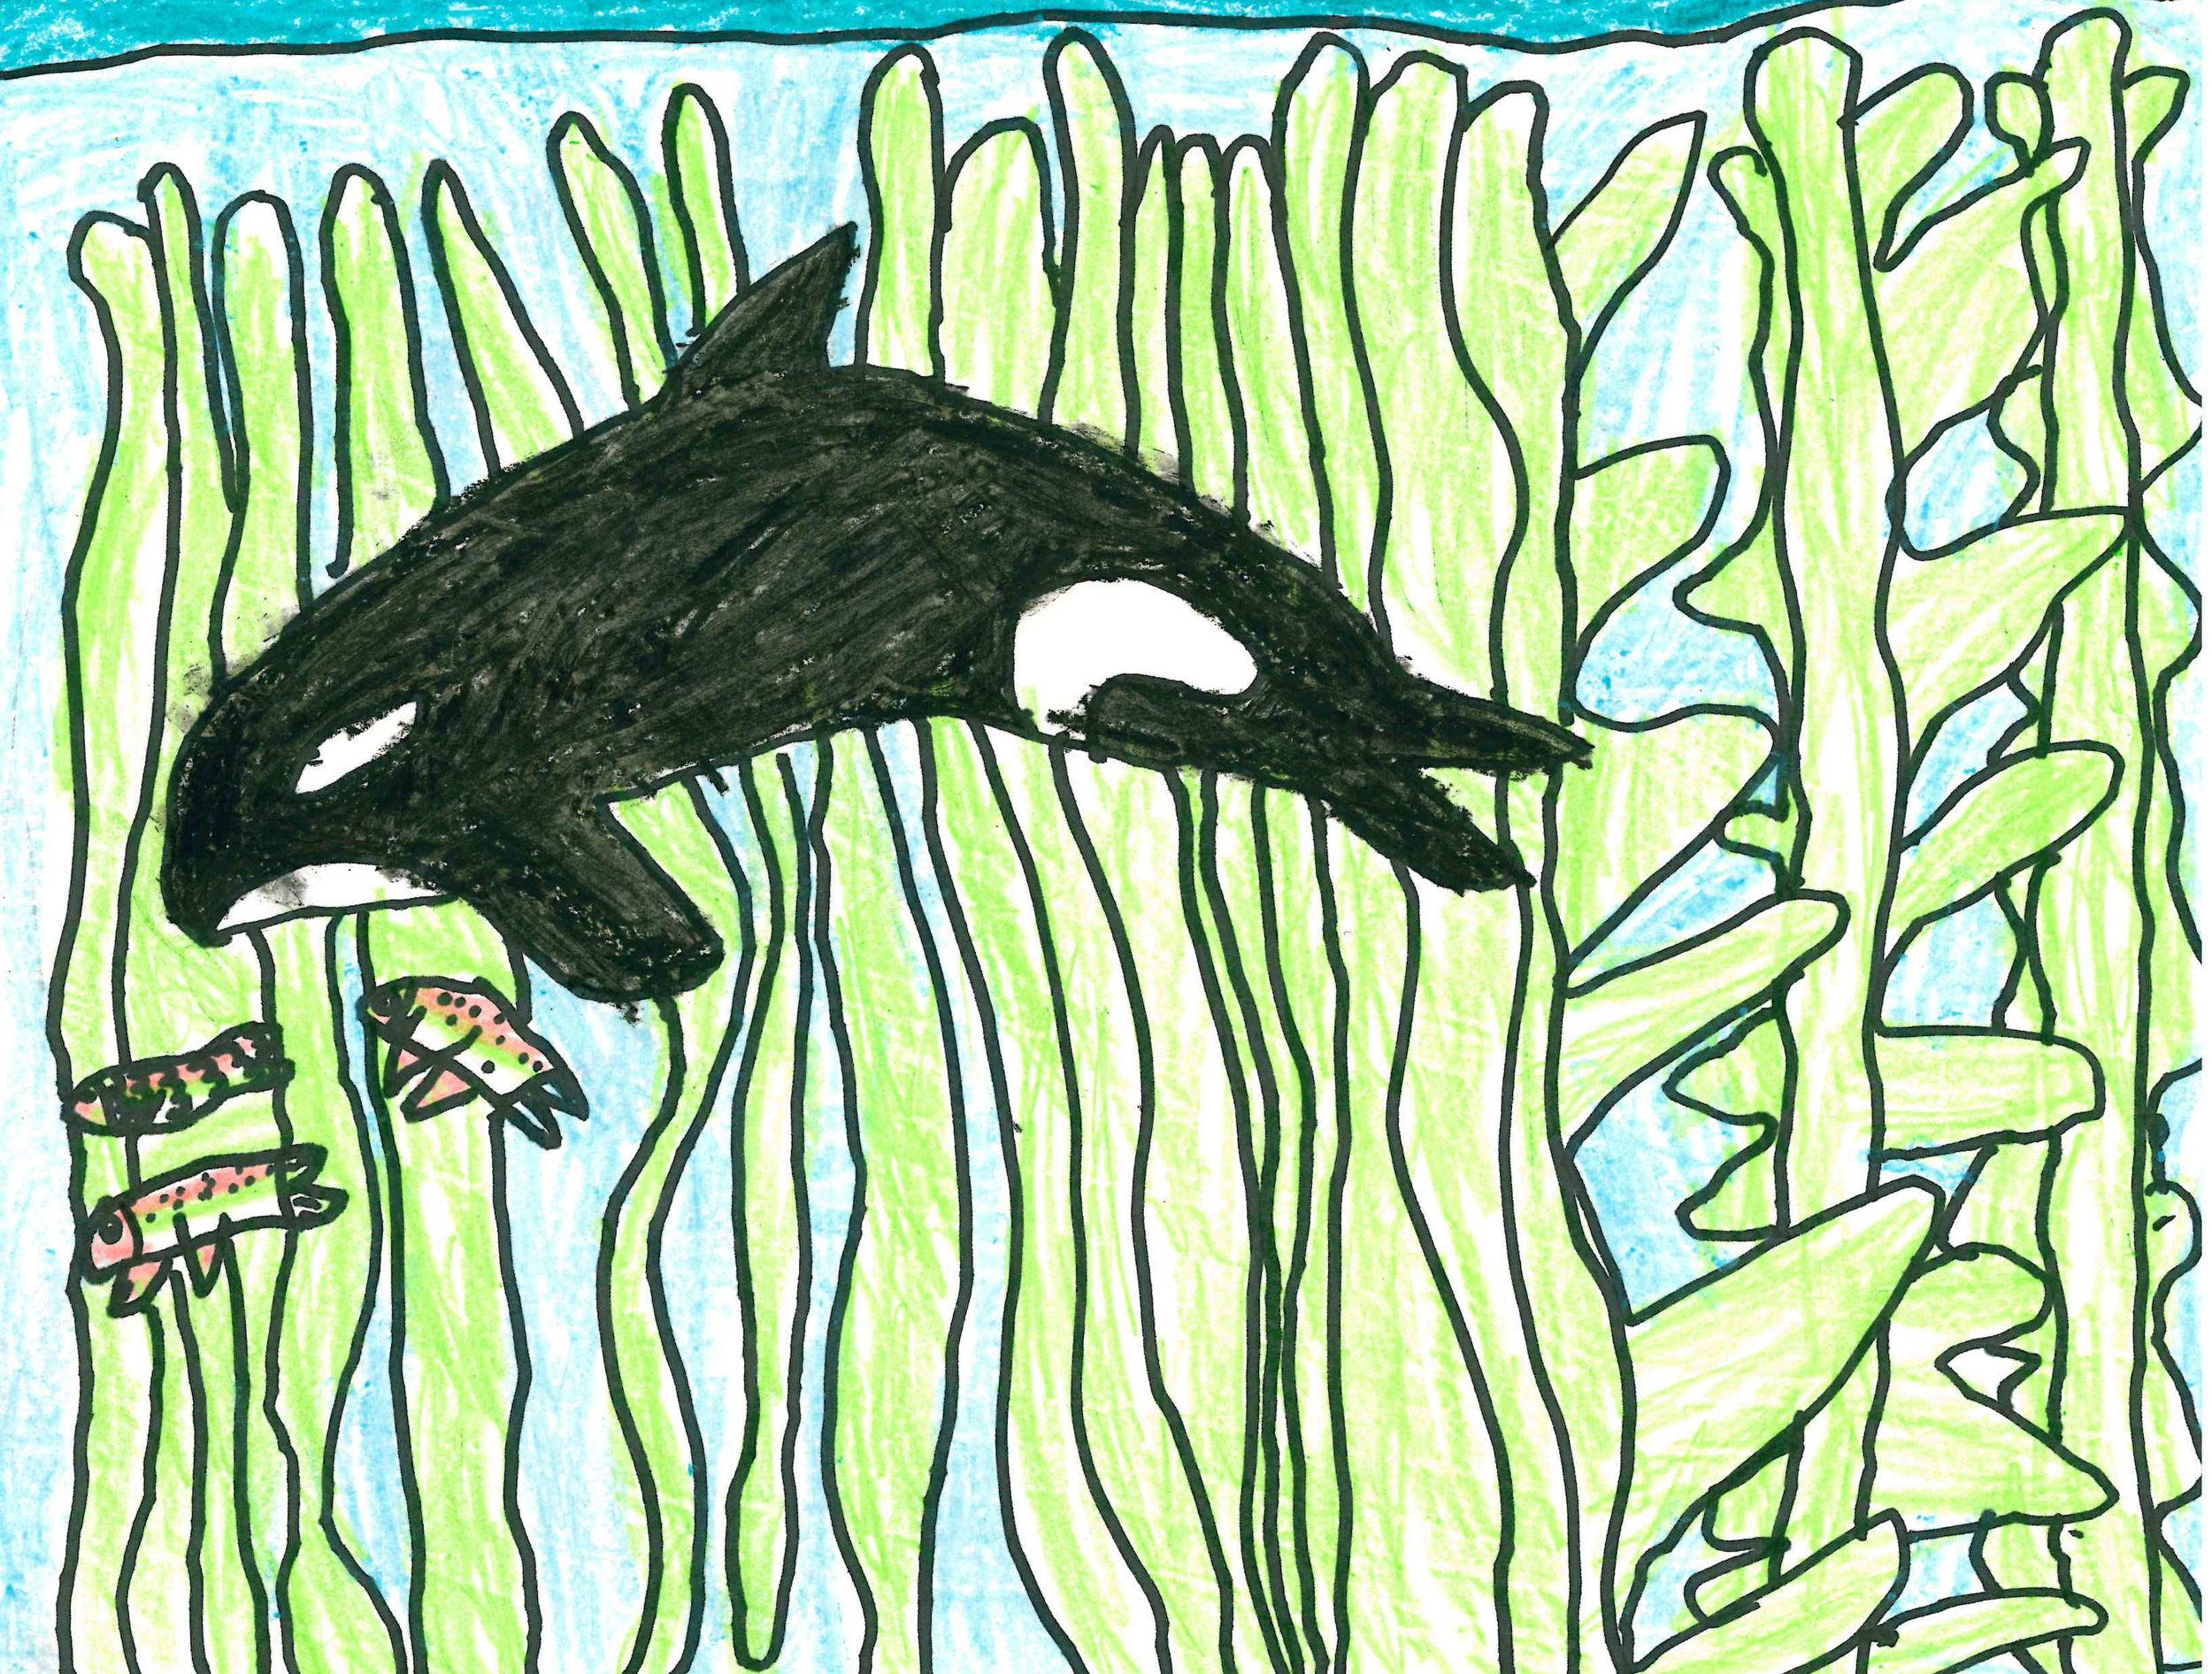 Orca and Kelp by Annalise Buck - 1st Place - Grades K-2